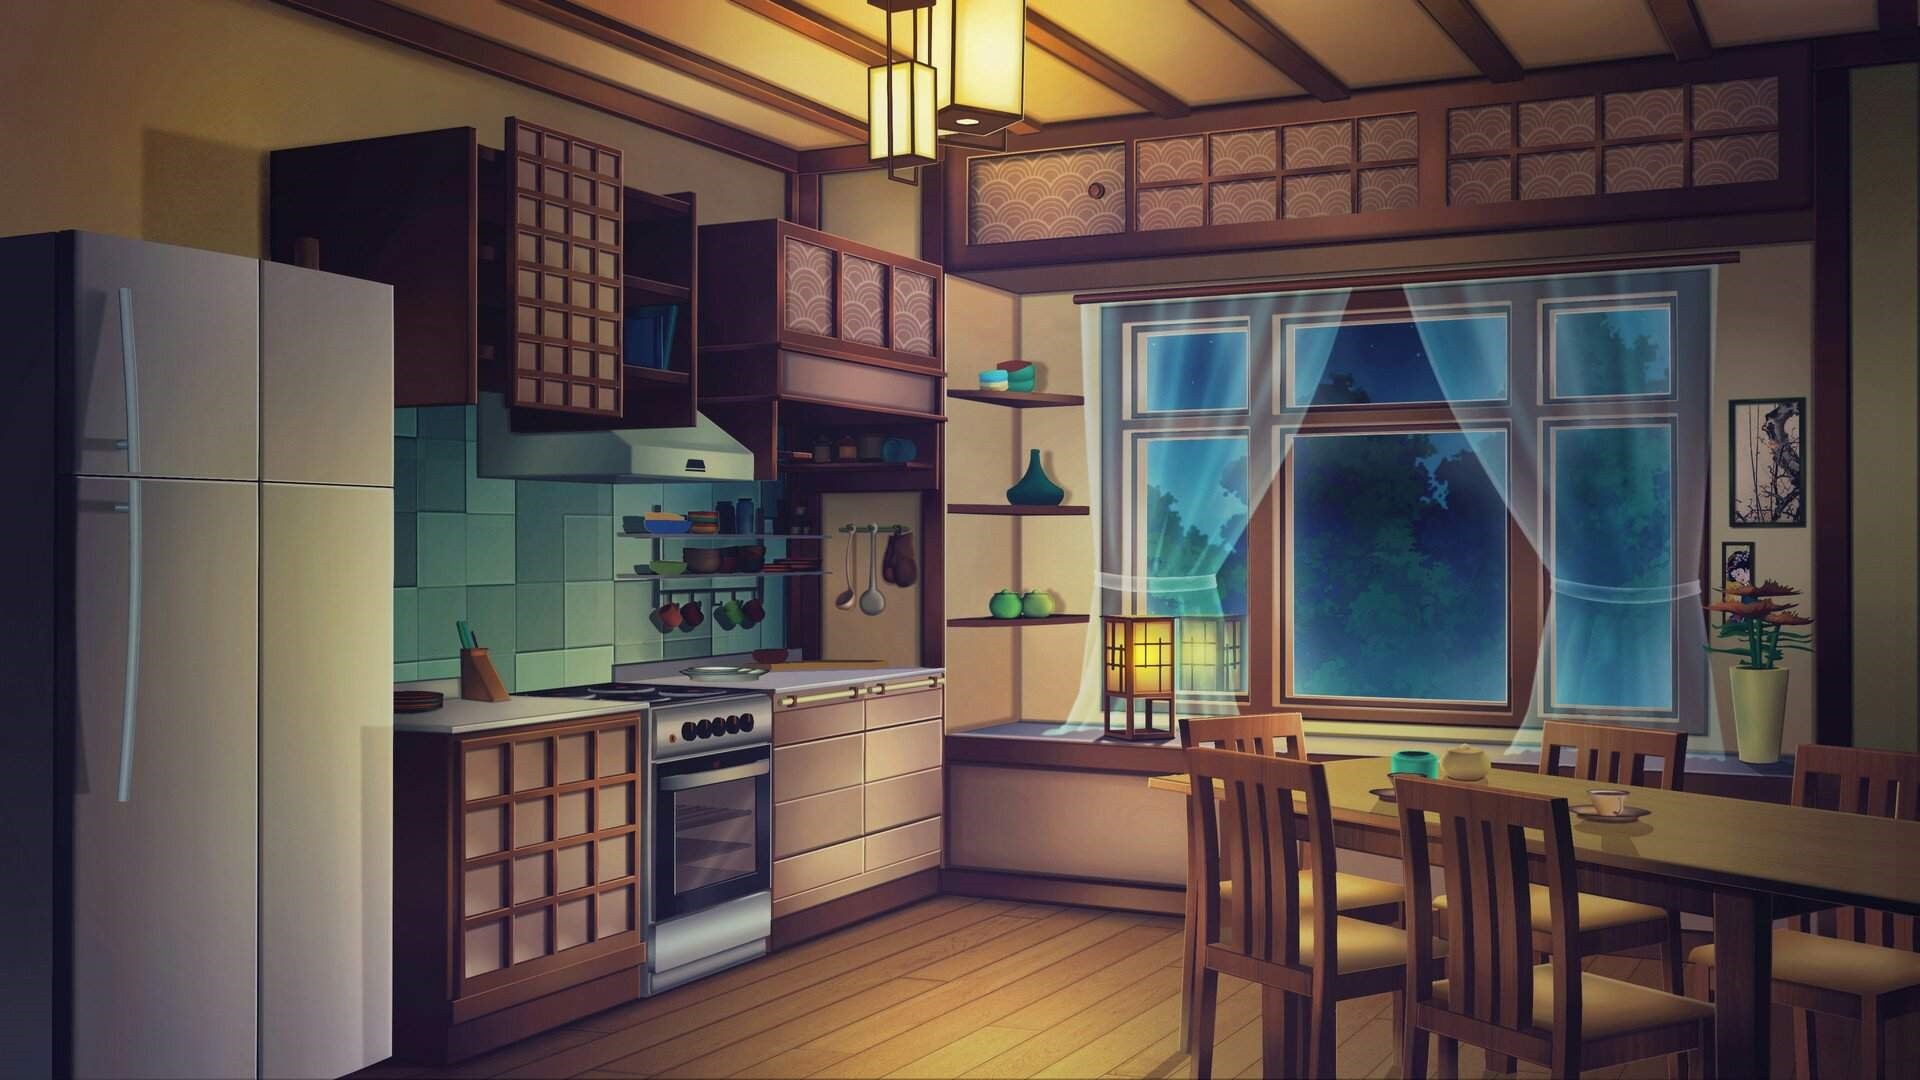 Anime Kitchen computer wallpaper